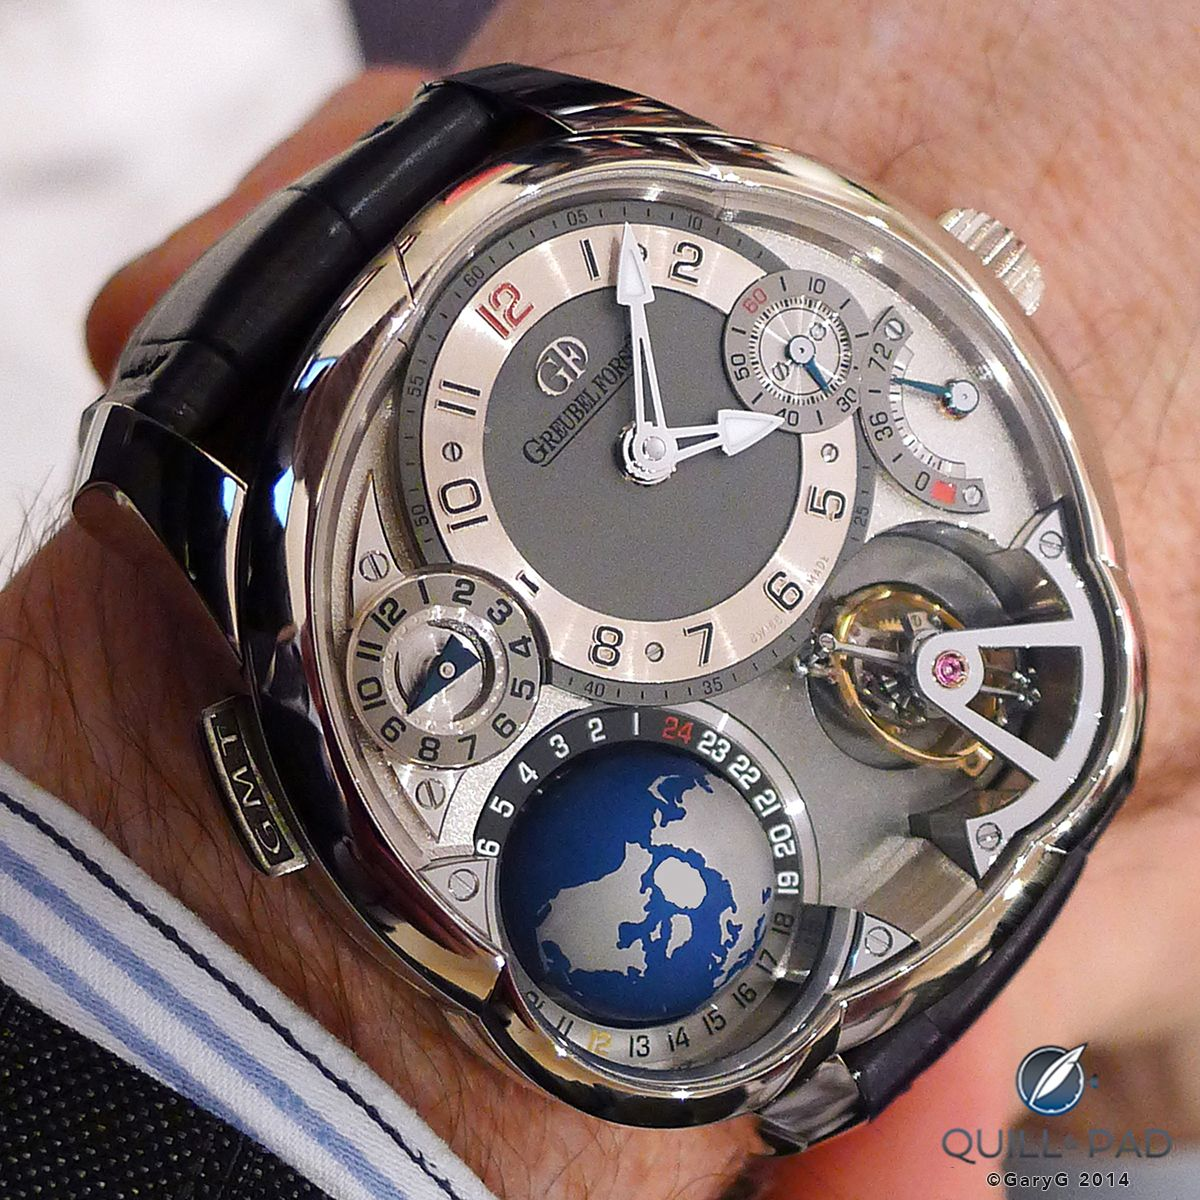 Greubel Forsey GMT on the wrist